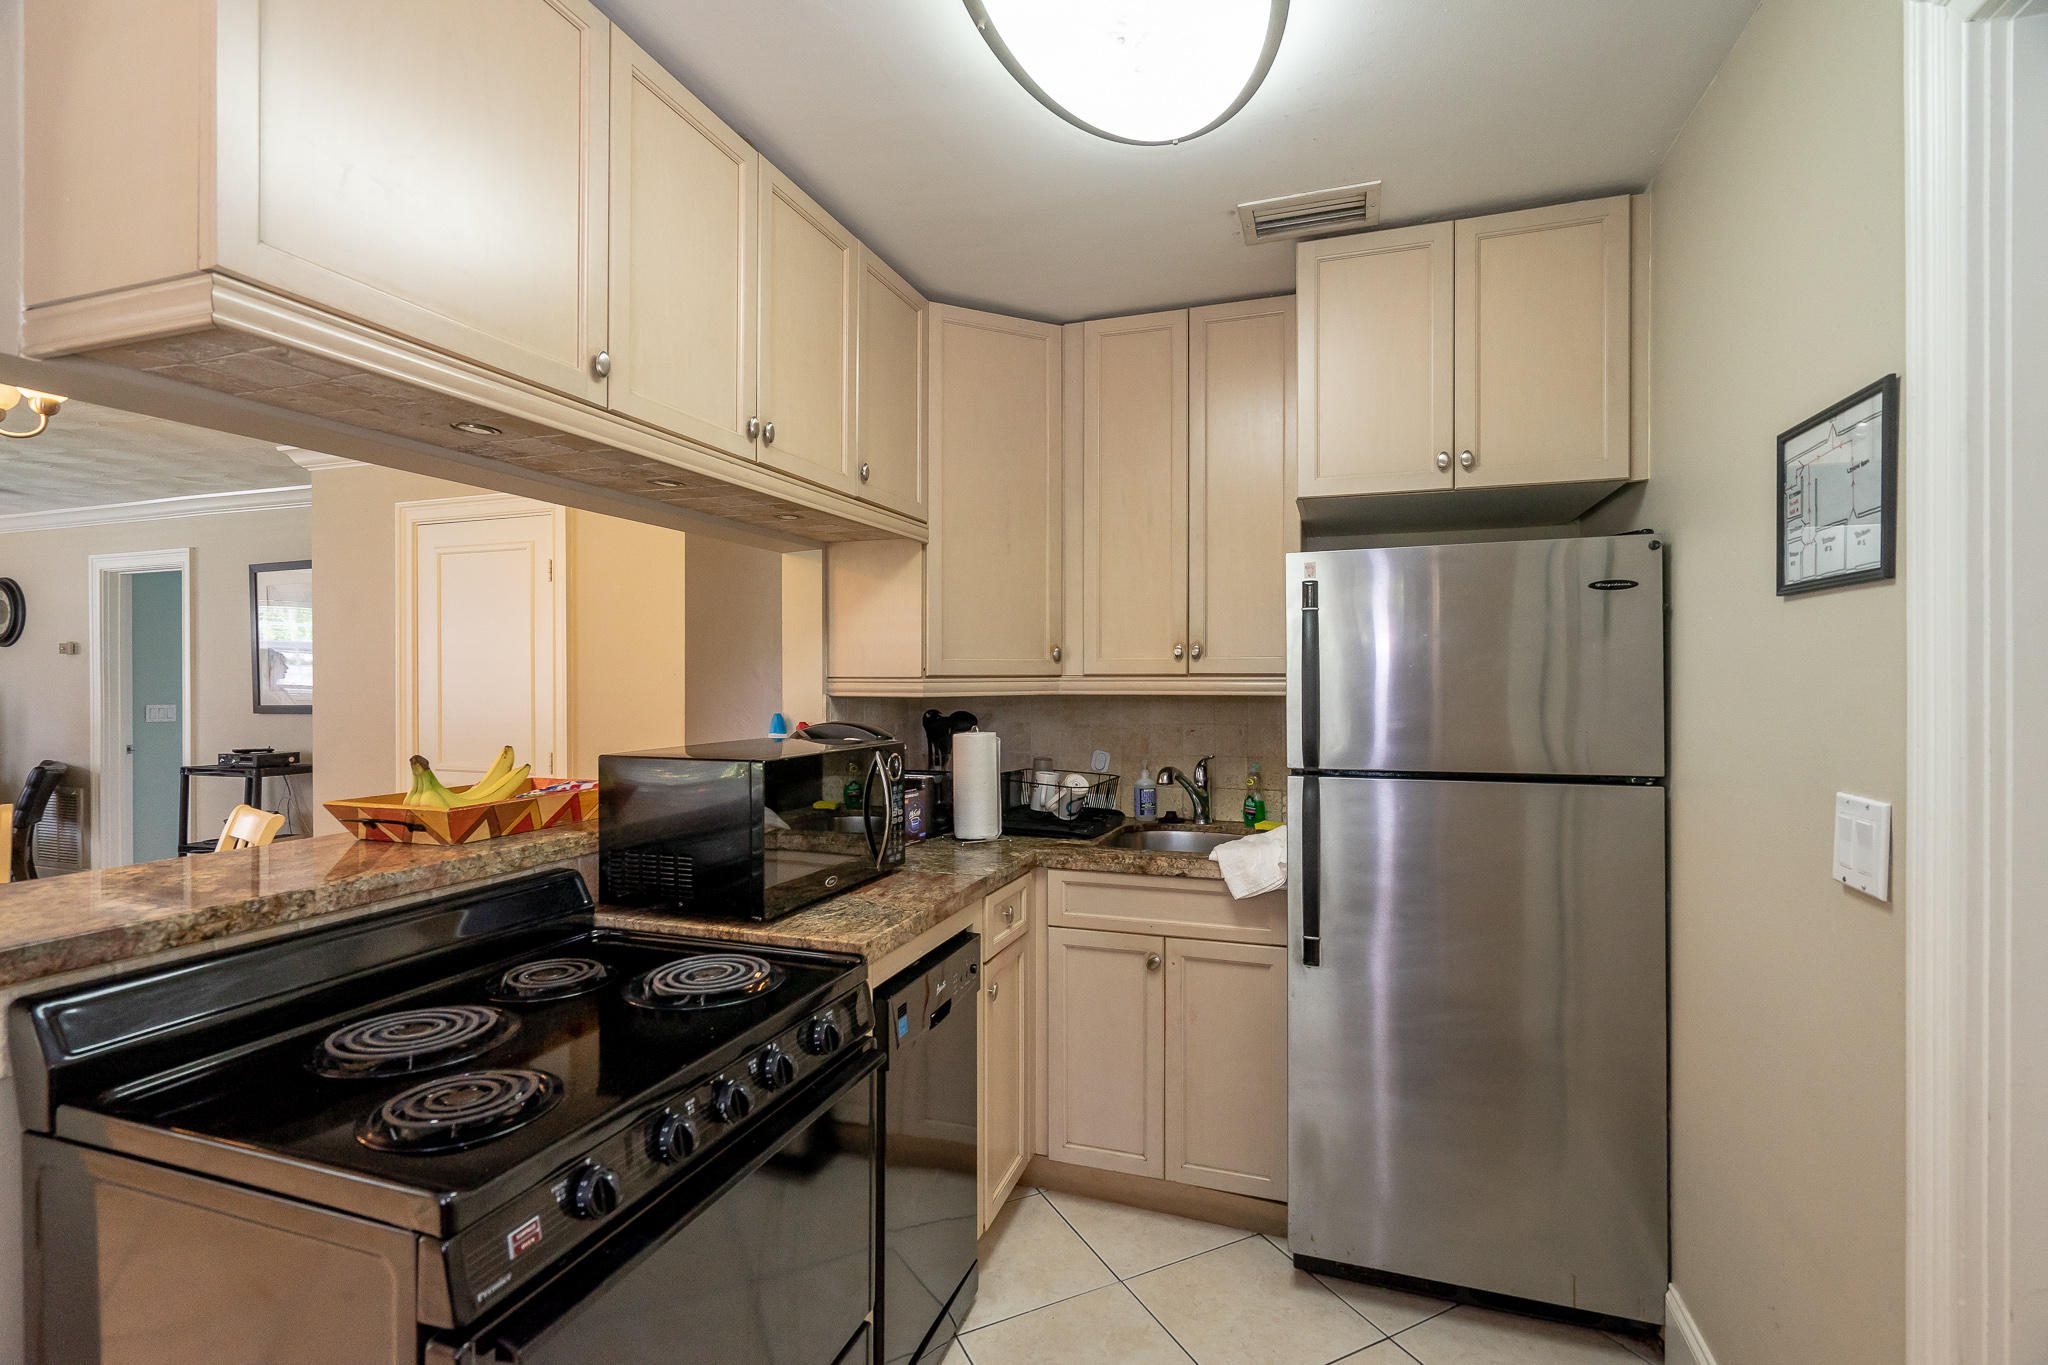 1638 3rd Avenue, Delray Beach, Florida 33444, 3 Bedrooms Bedrooms, ,1 BathroomBathrooms,Single Family,For Sale,3rd,RX-10422675